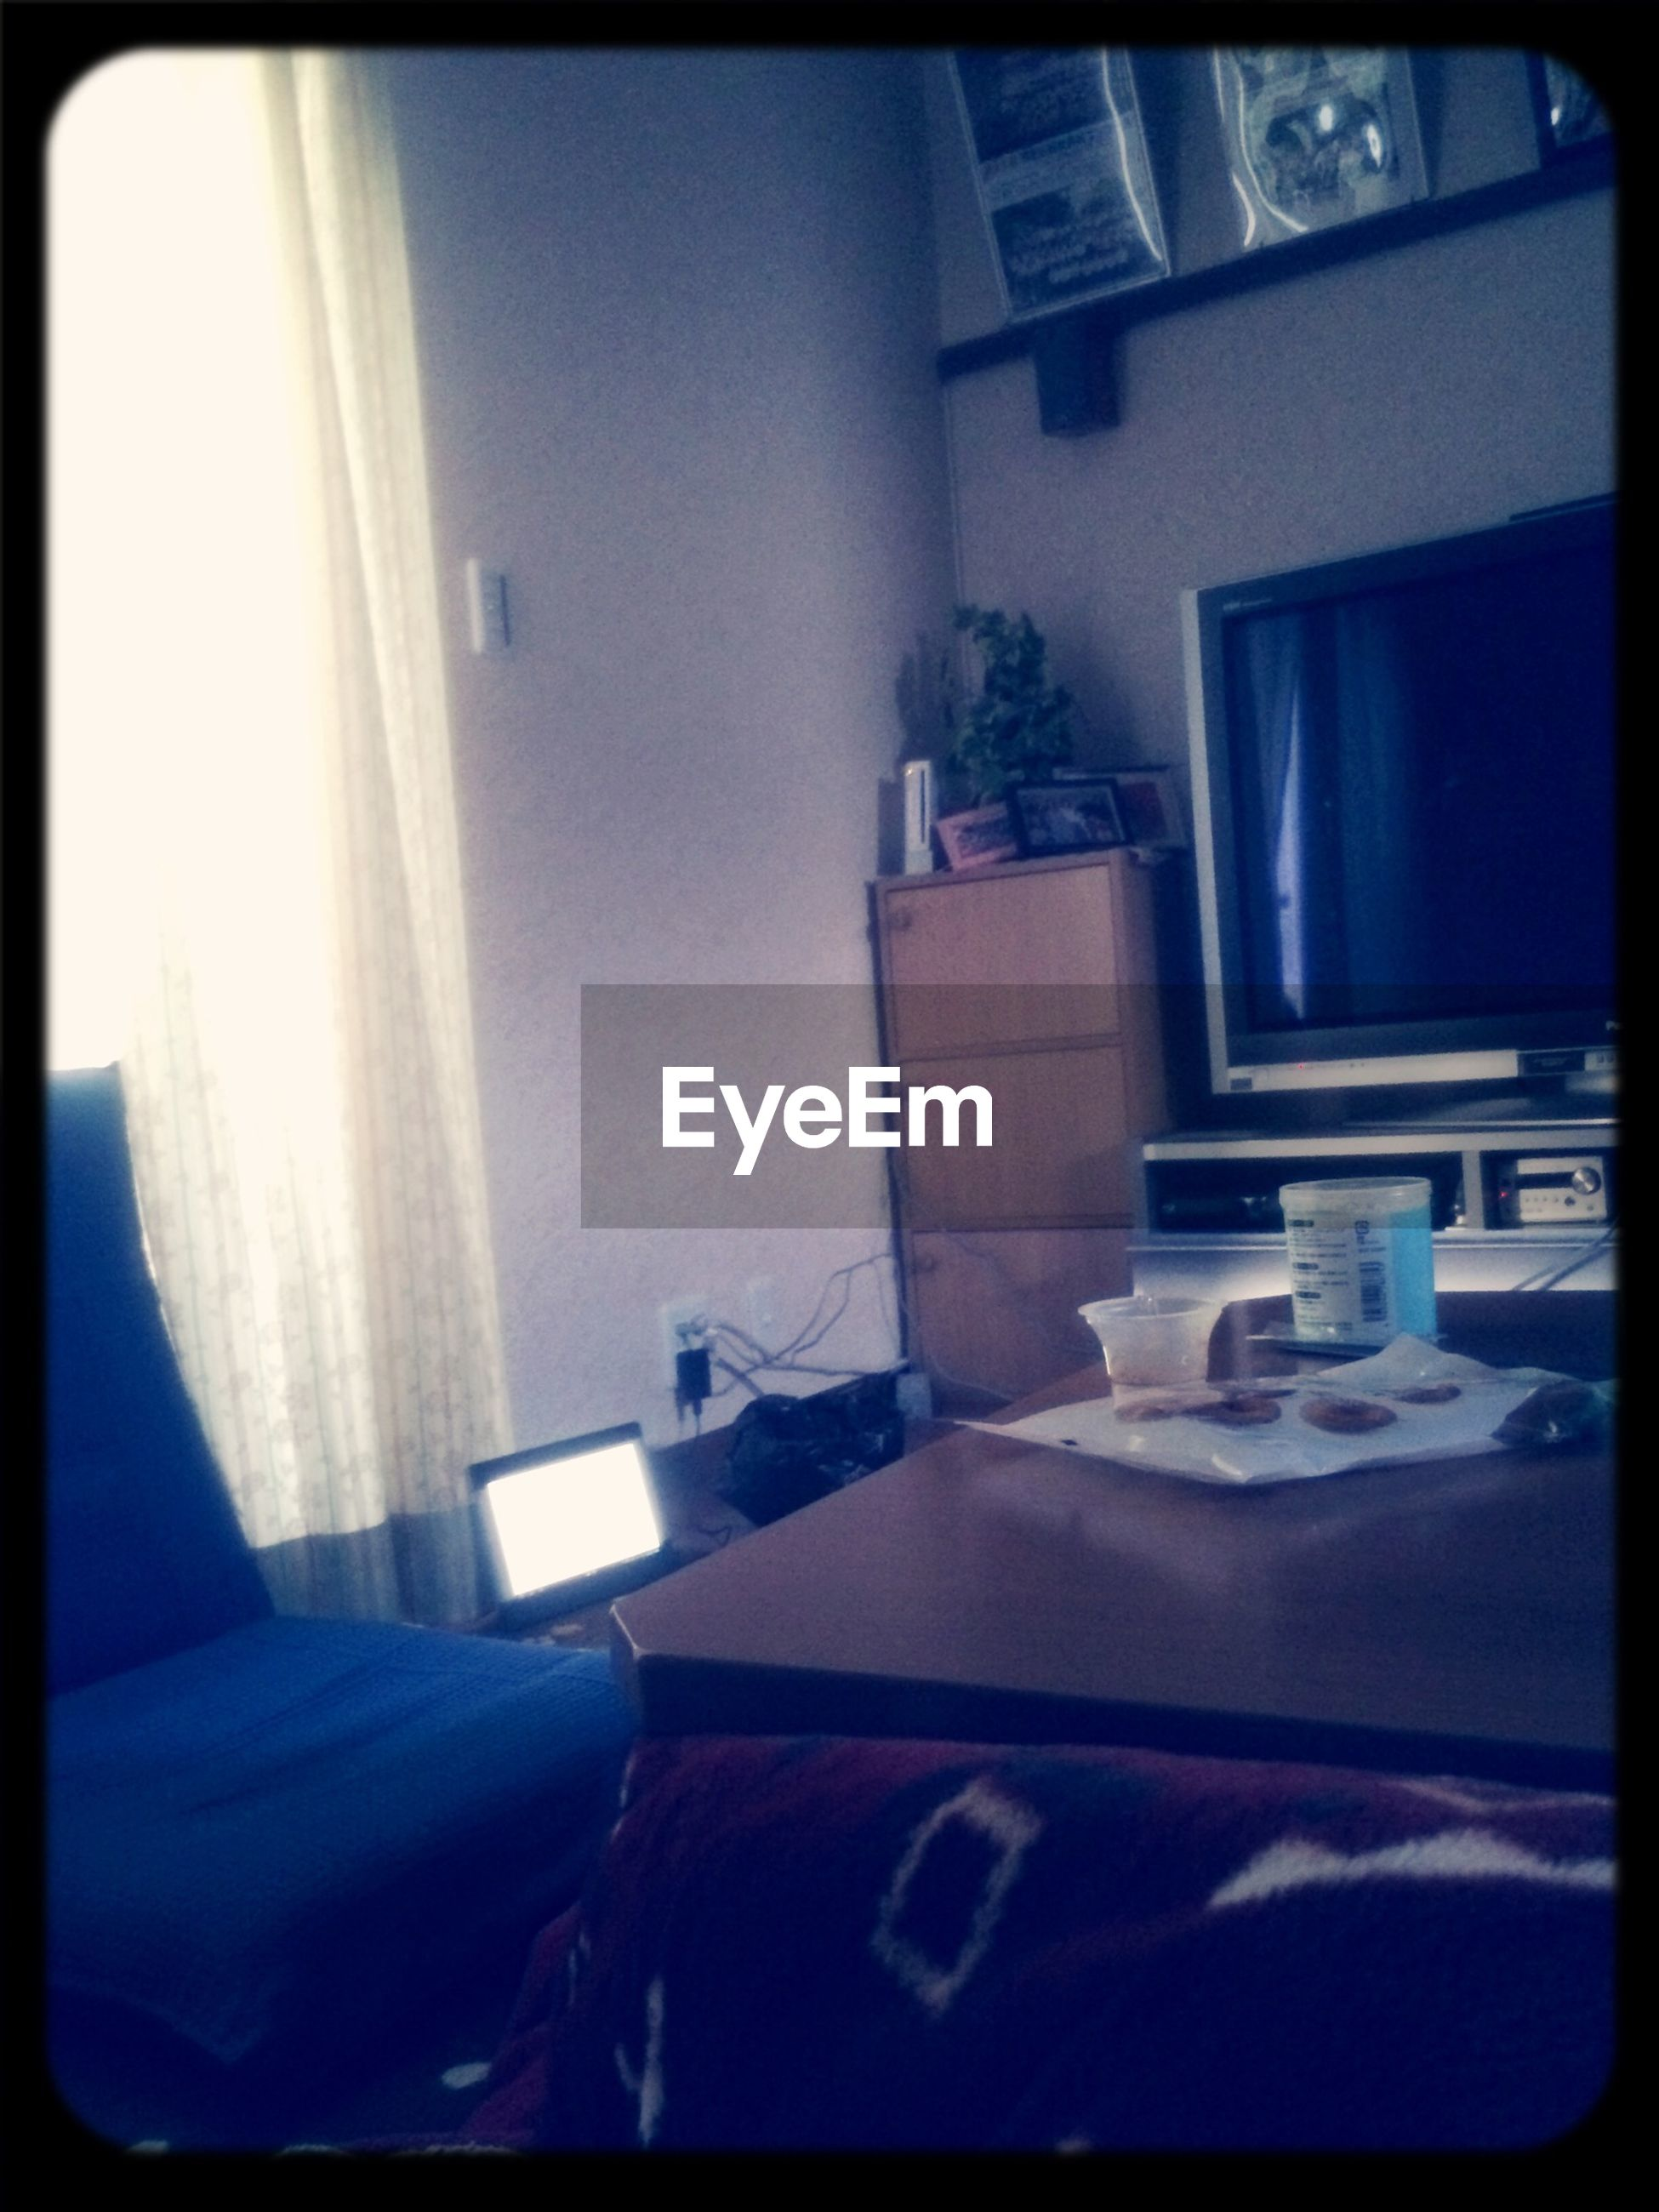 indoors, transfer print, auto post production filter, home interior, window, house, chair, architecture, built structure, domestic room, living room, absence, sunlight, table, bed, empty, bedroom, domestic life, day, curtain